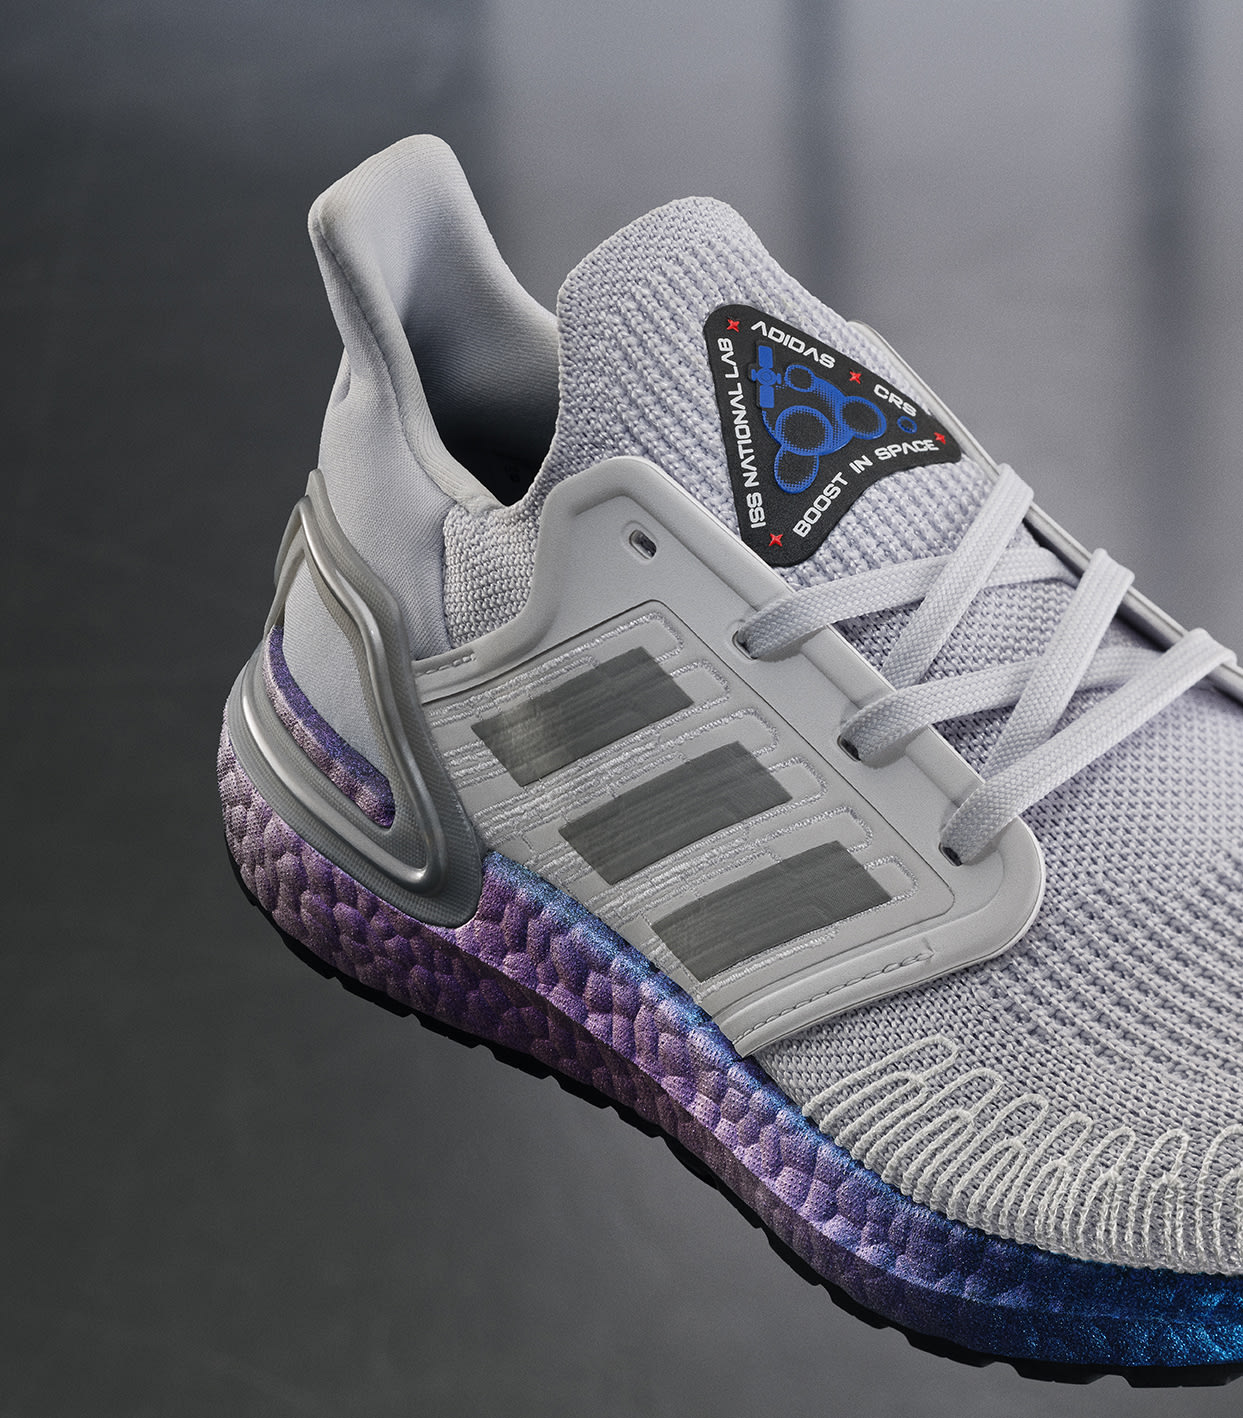 Adidas Ultra Boost 20 Release Date | Sole Collector